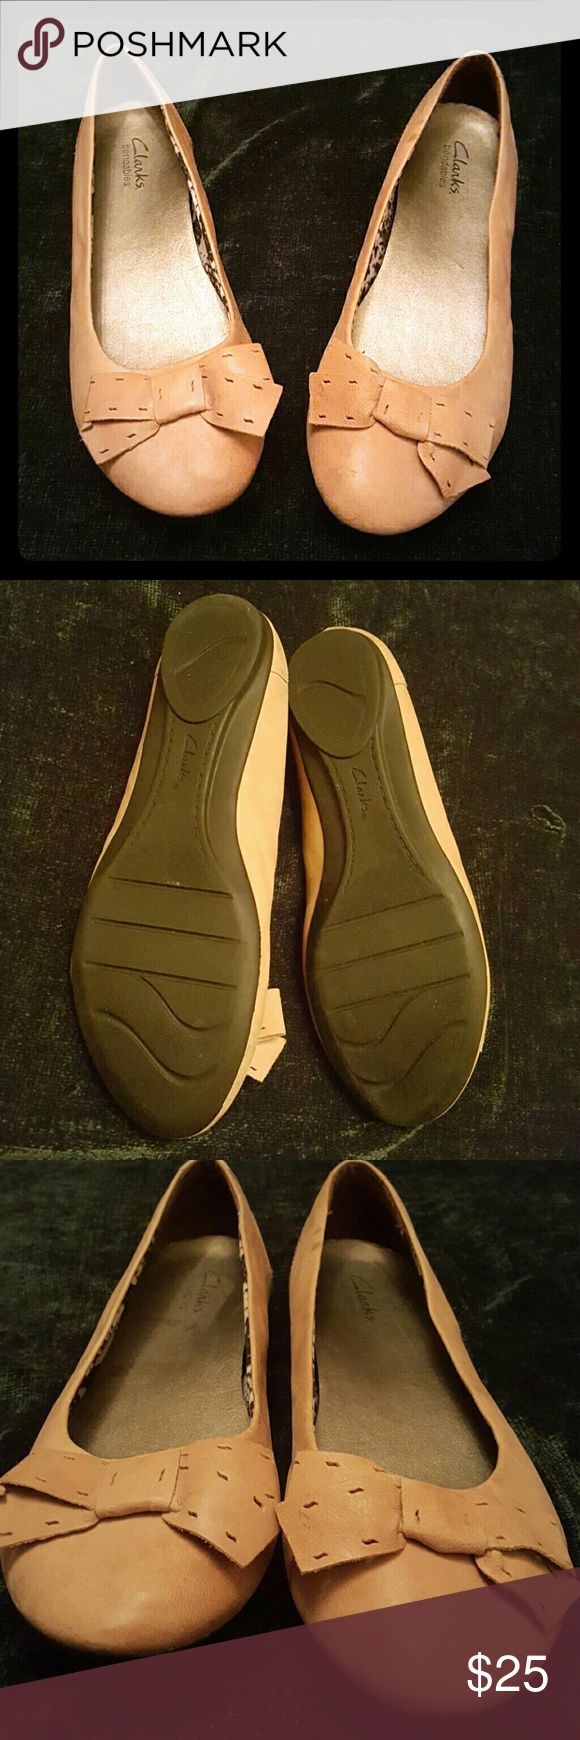 Clarks Ballet Flats Clarks Beige/Camel colored ballet flats NWOB. I wore these maybe 3 or 4 times, as you can see from the photos there is no visible wear or tears or discoloration. I hardly ever wore them. These babies are SUPER SOFT!! Size 9.5. Smoke free home. Clarks Shoes Flats & Loafers